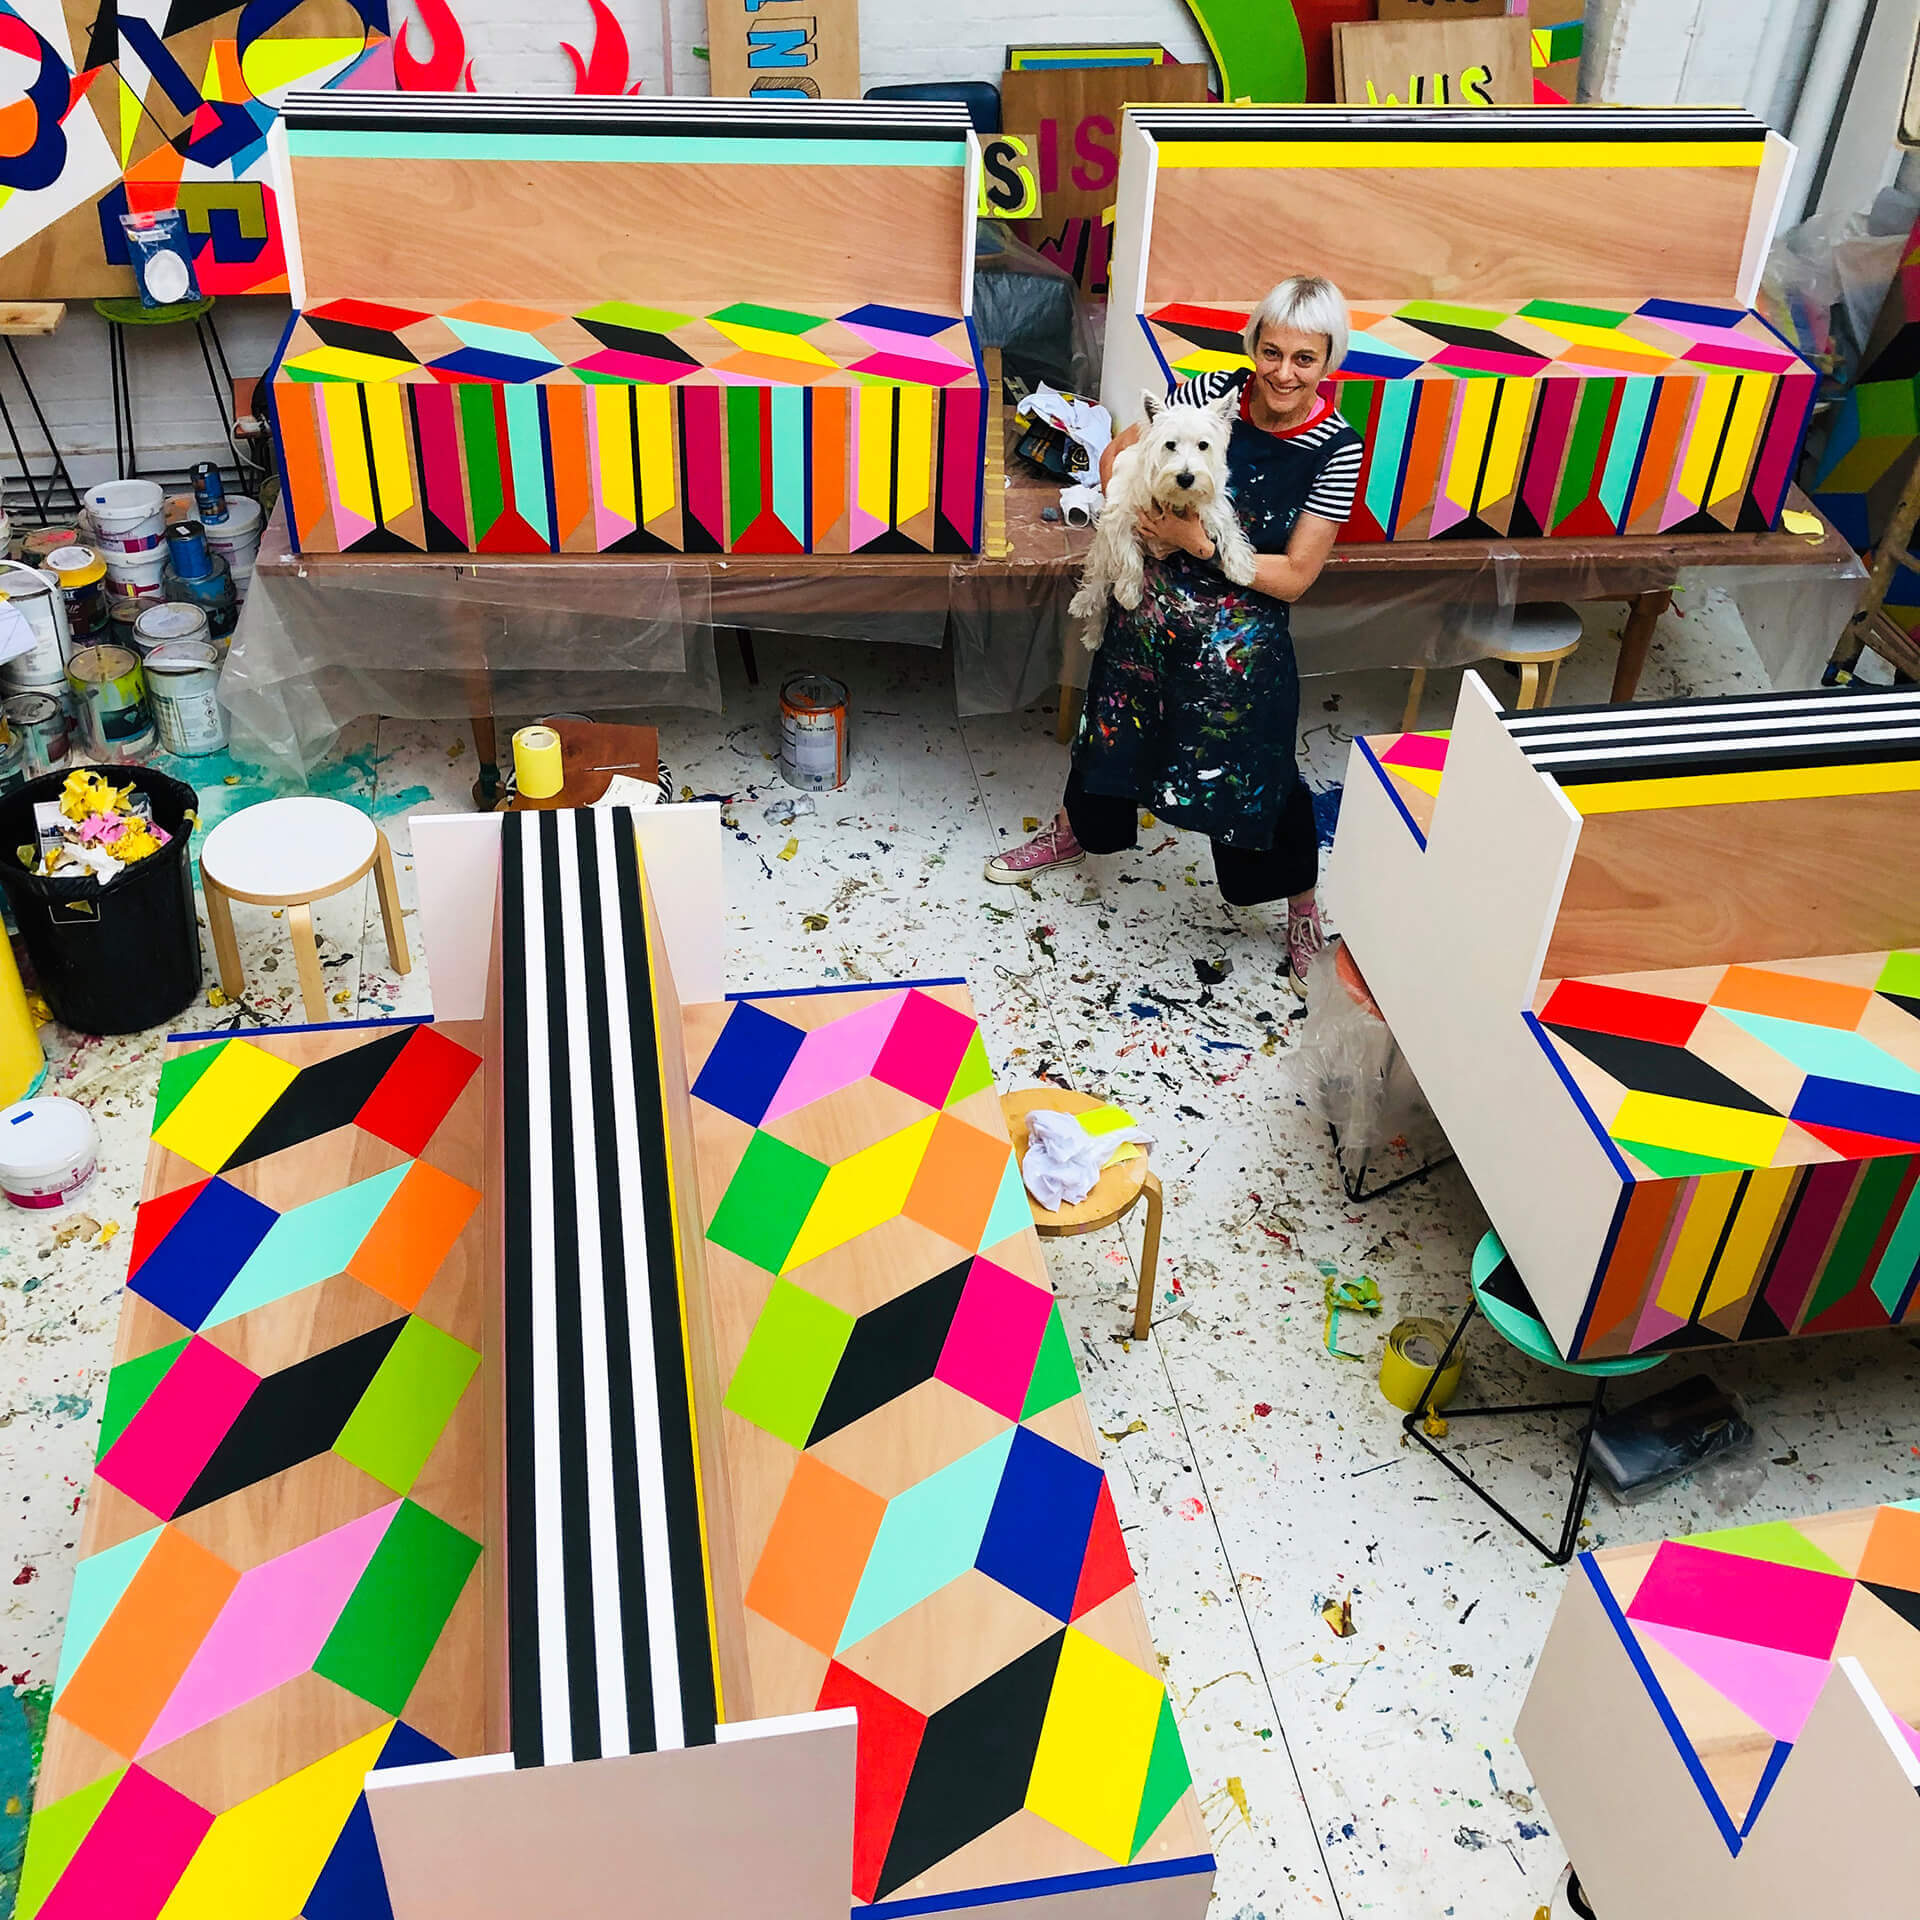 Artist Morag Myerscough's eclectic breadth of works is characterised by engaging boldness of colours and graphics | Cross Border Conversations | Morag Myerscough X Neil Harbisson | STIR X LOCO Design